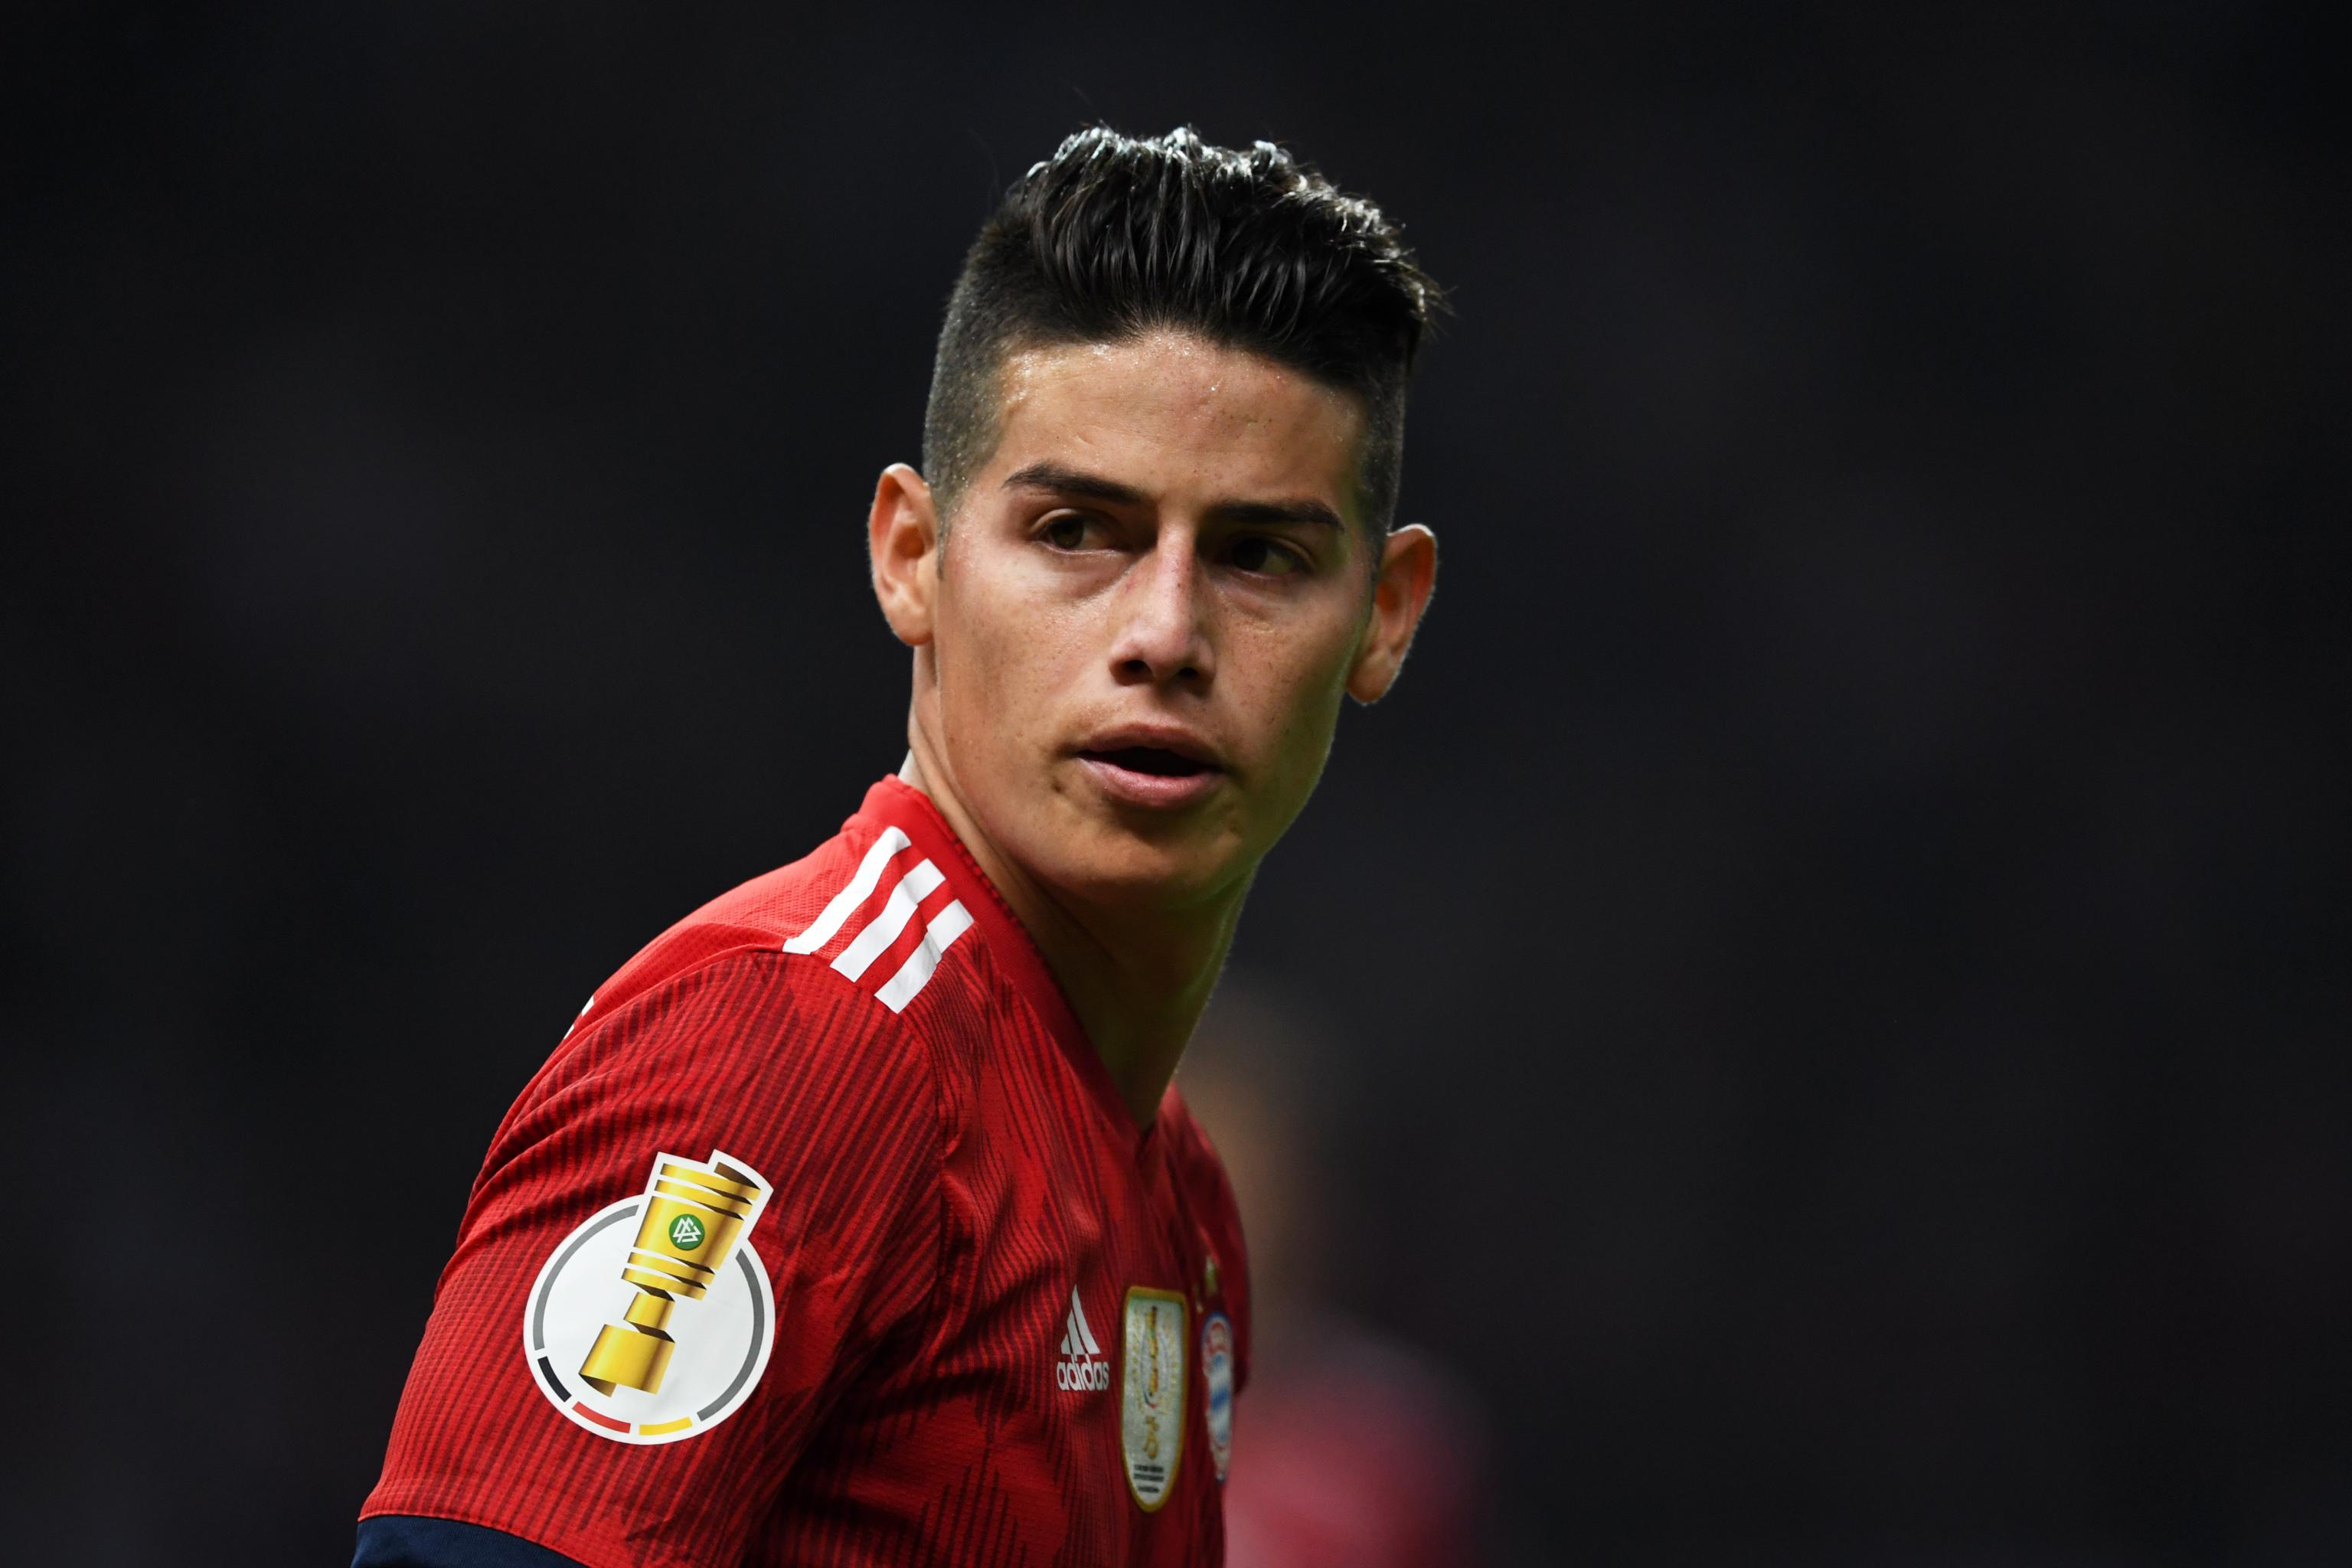 Real Madrid Considering Keeping James Rodriguez After Bayern Munich Loan Bleacher Report Latest News Videos And Highlights